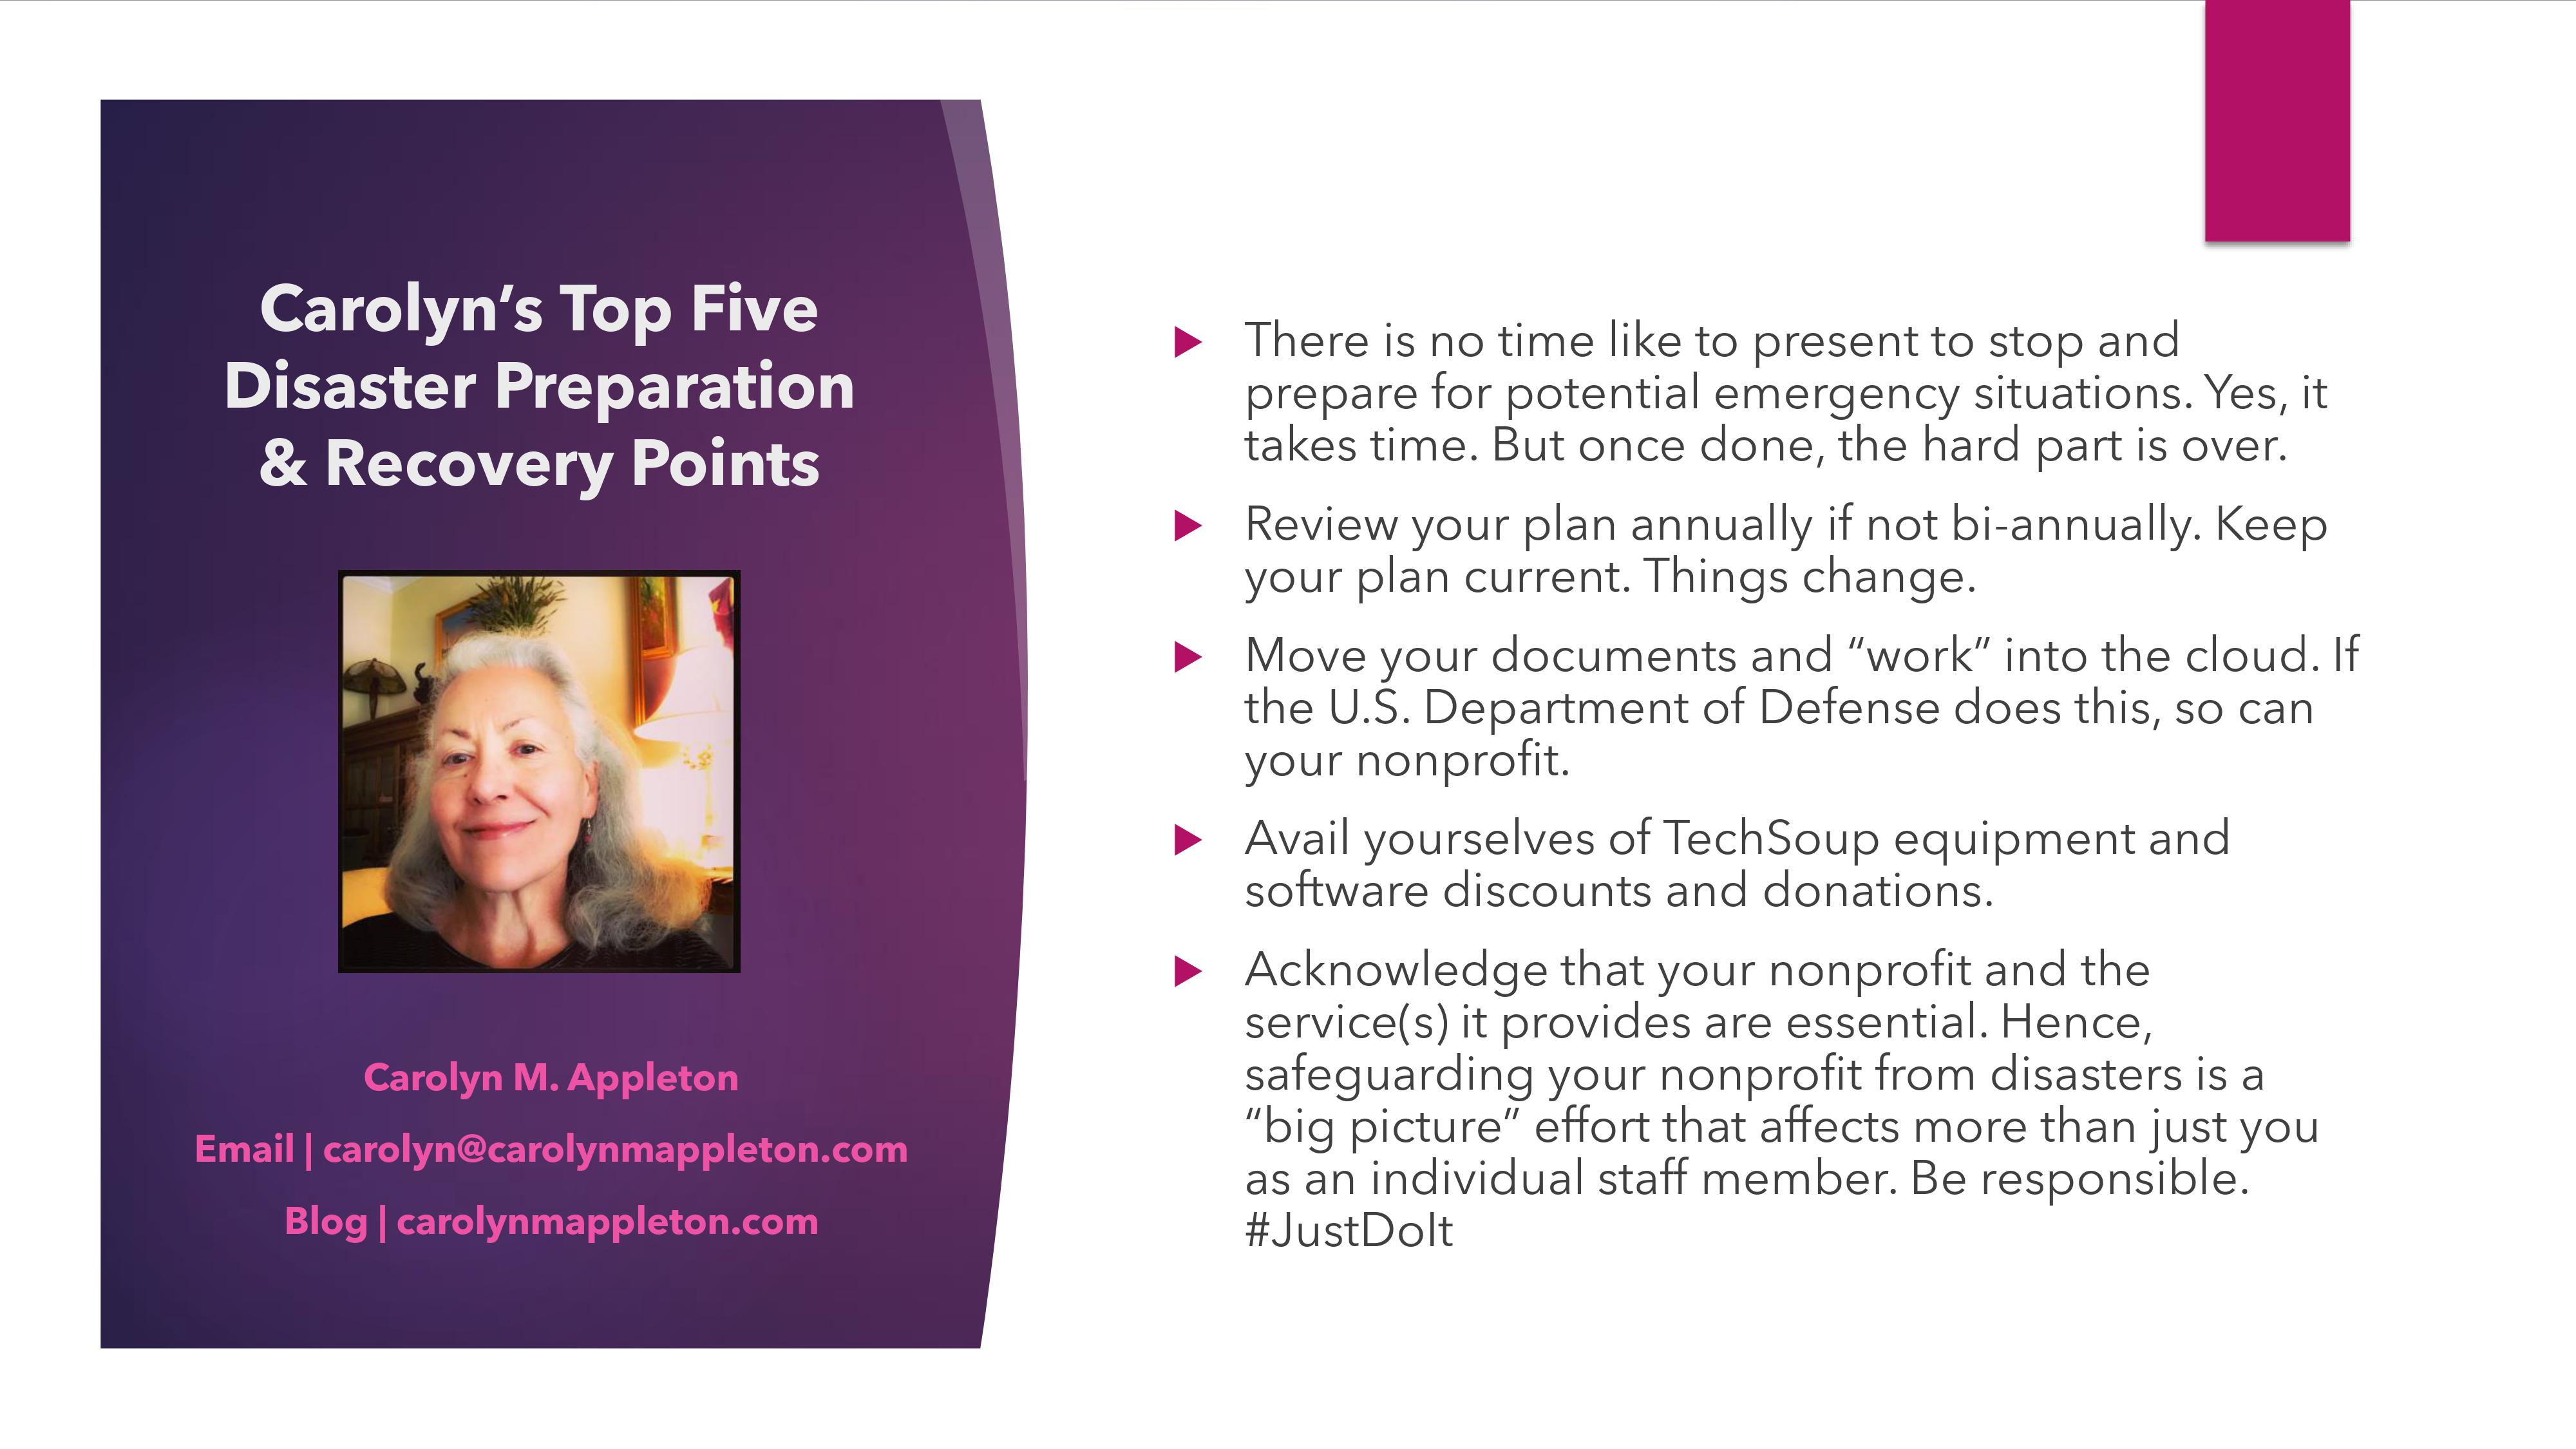 Carolyn's Top Five Points